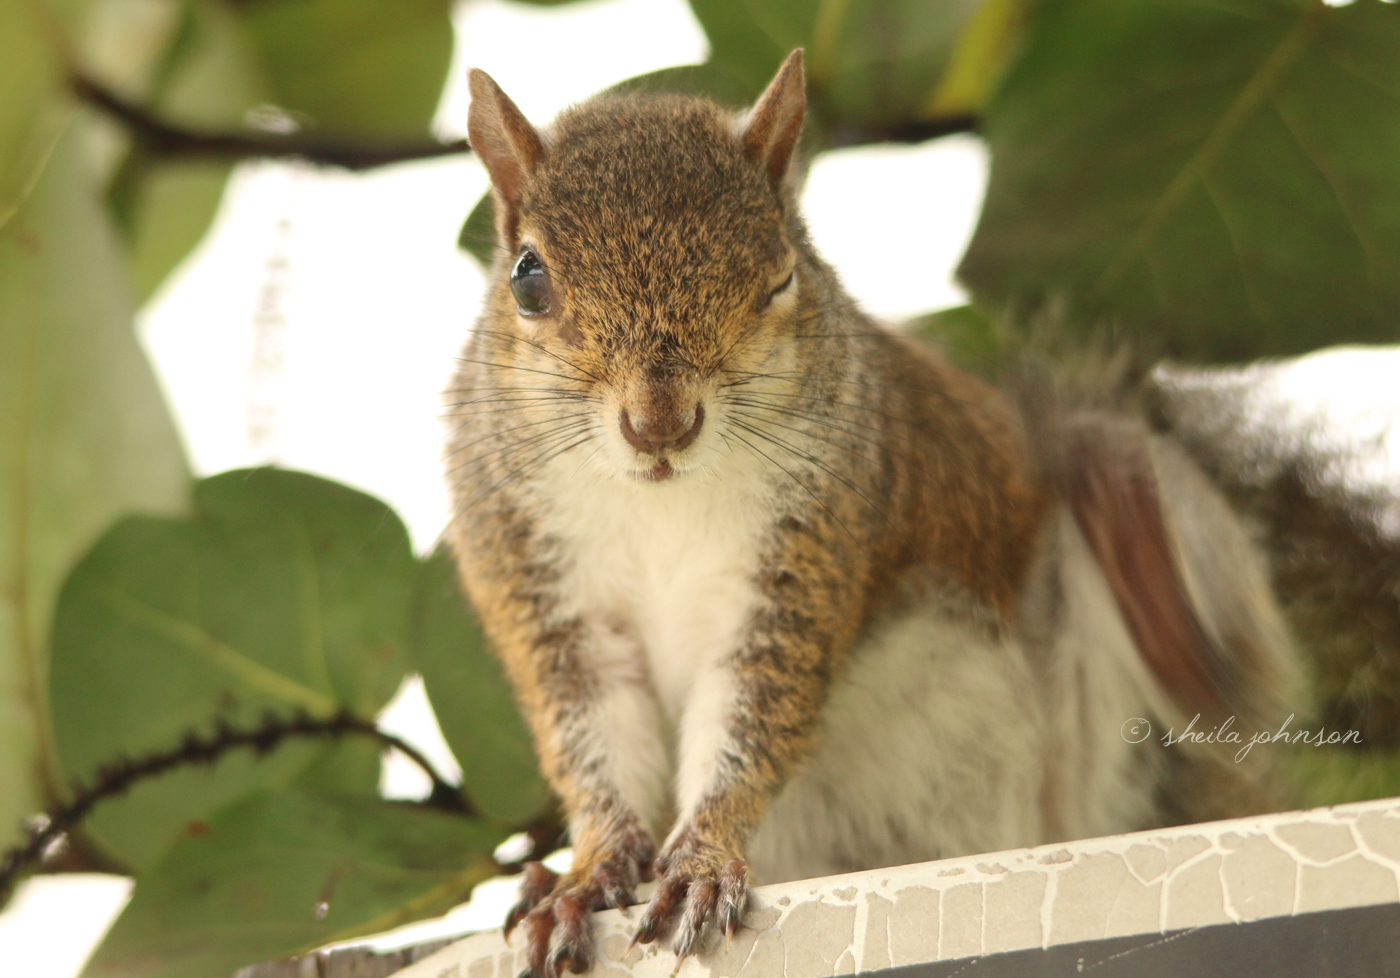 I Think He Likes Me, This Flirty Little Florida Squirrel, Winking At Me Like That!